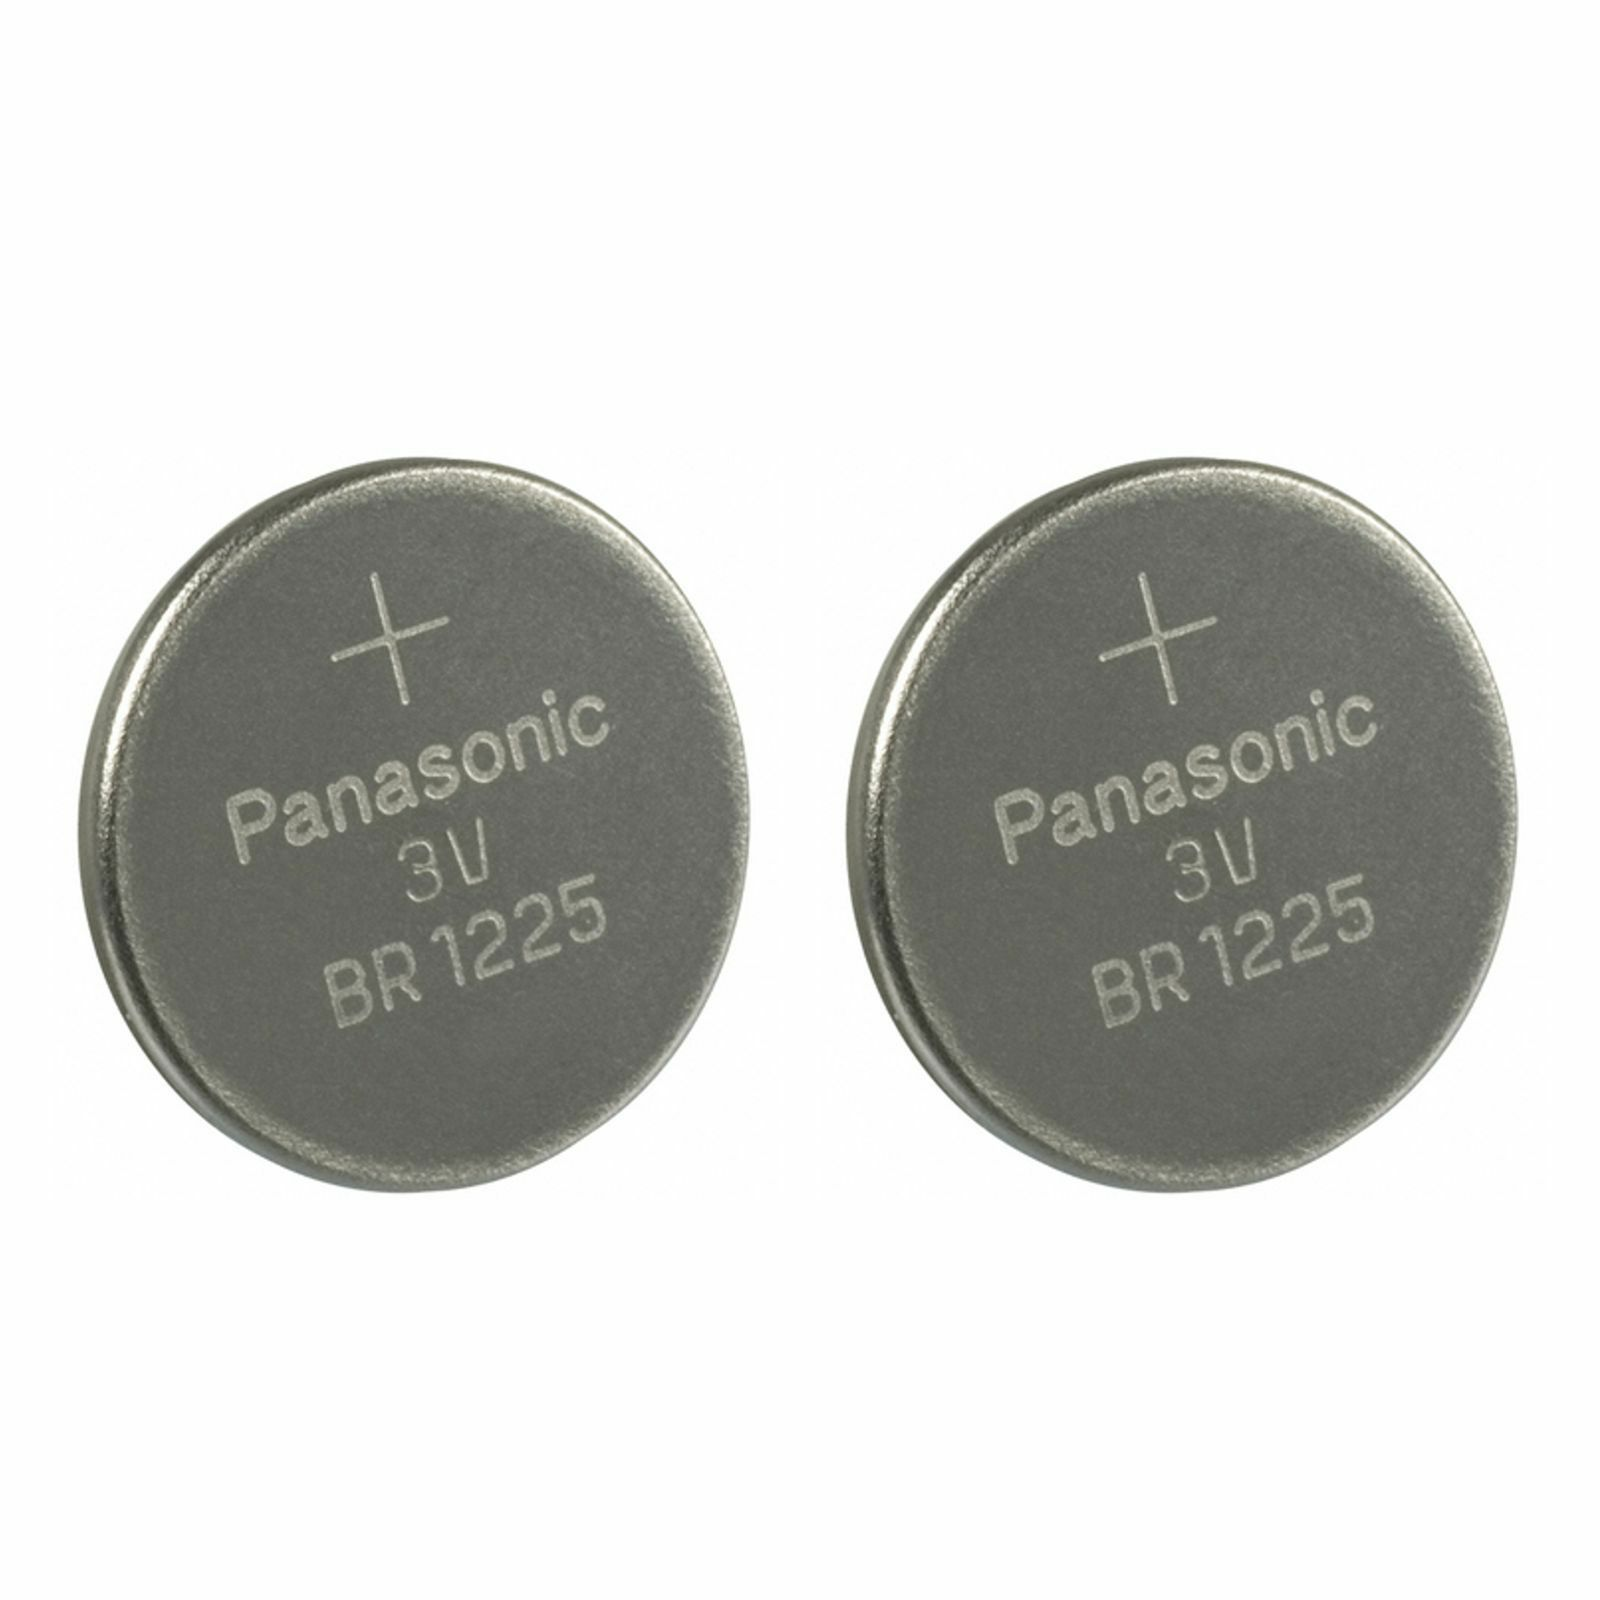 2 PANASONIC BR1225 EBR1225 CR1225 3v battery Exp.2027